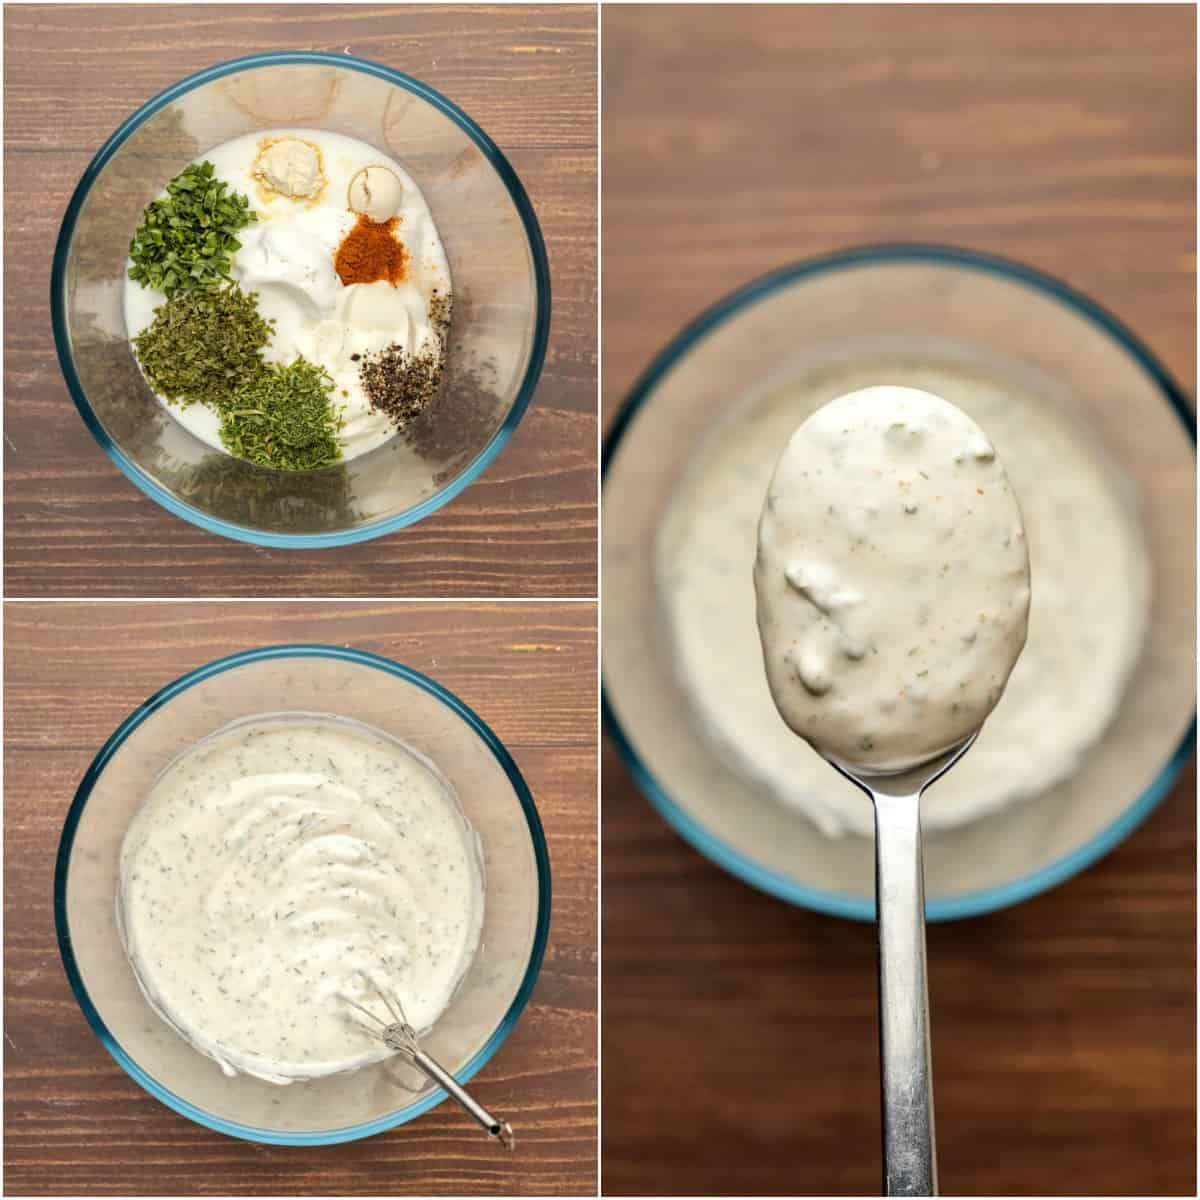 Step by step process photo collage of making ranch dressing.